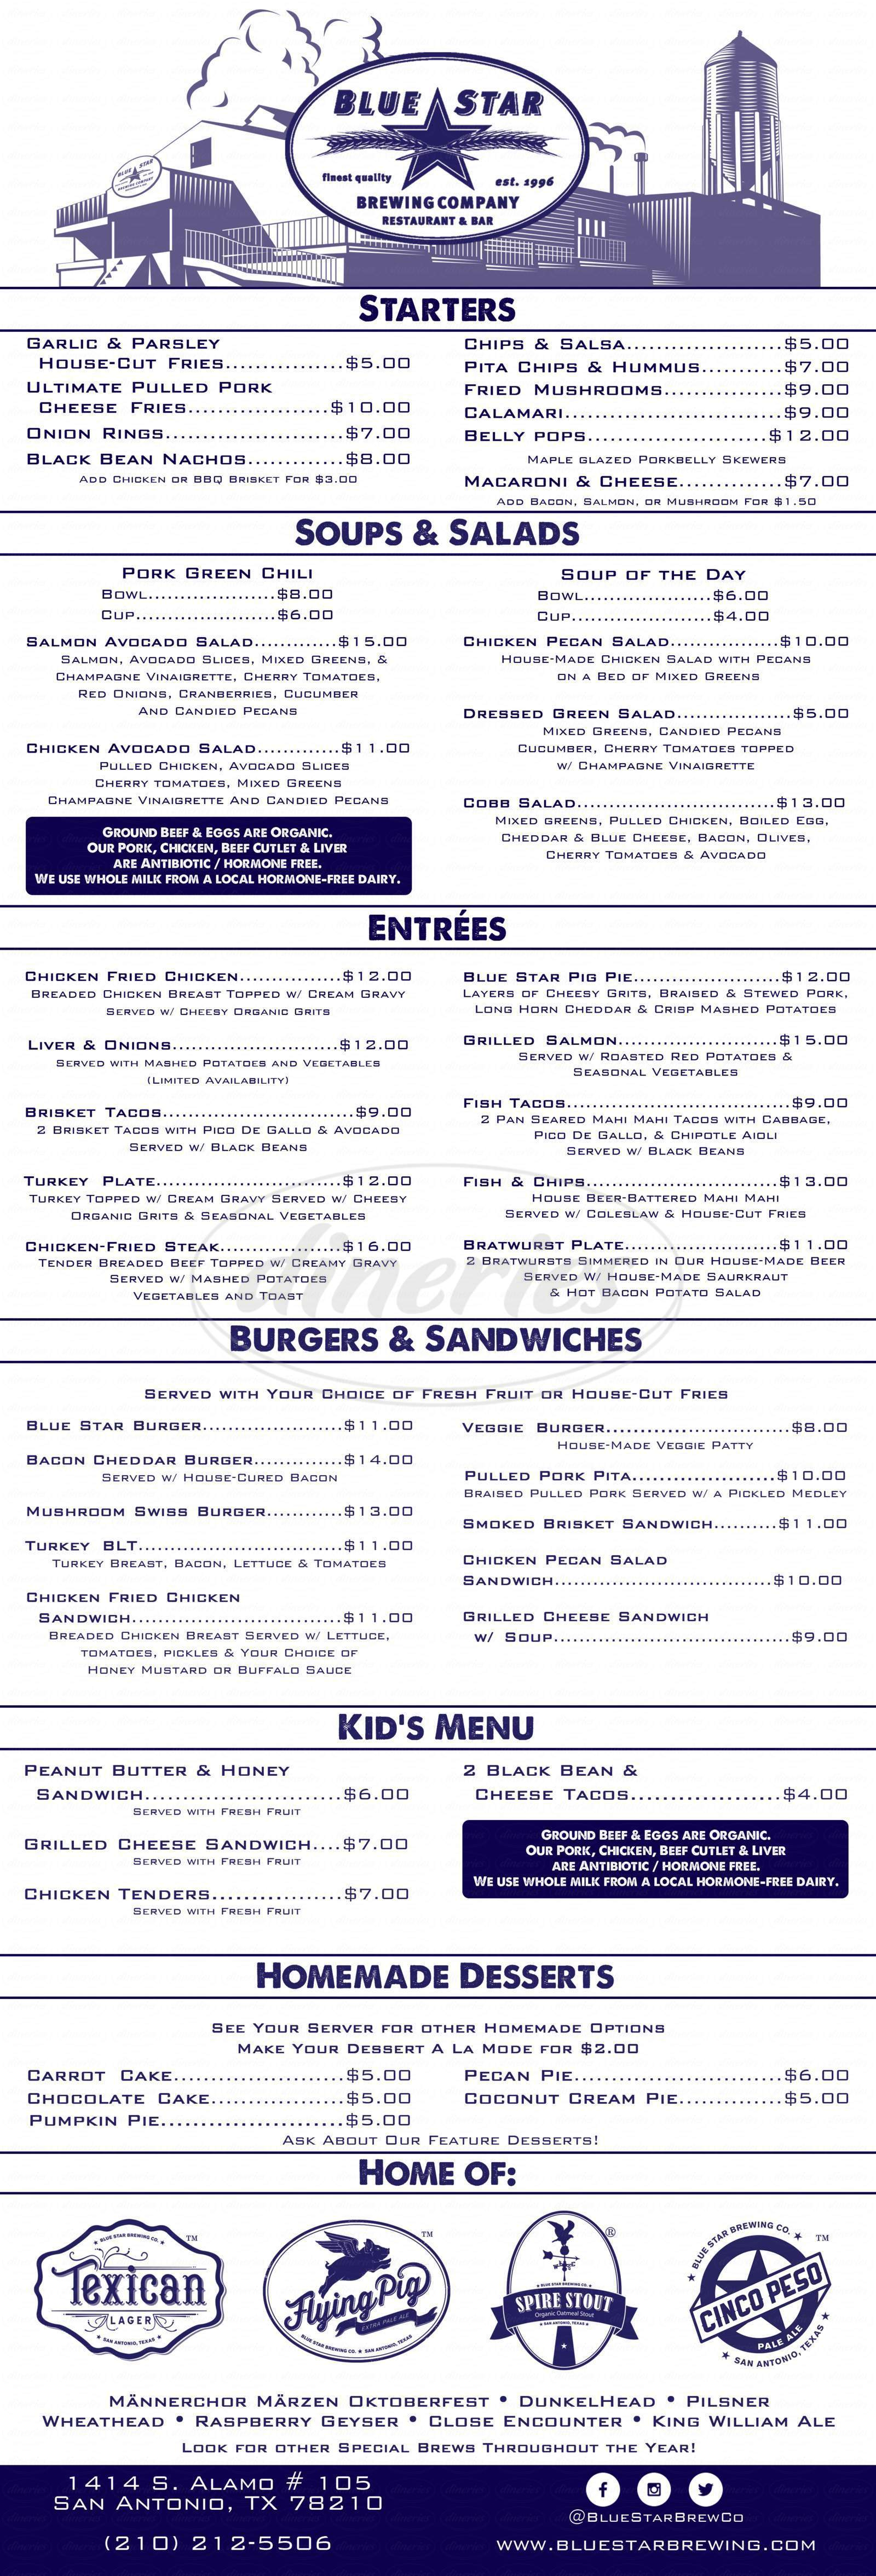 menu for Blue Star Brewing Co